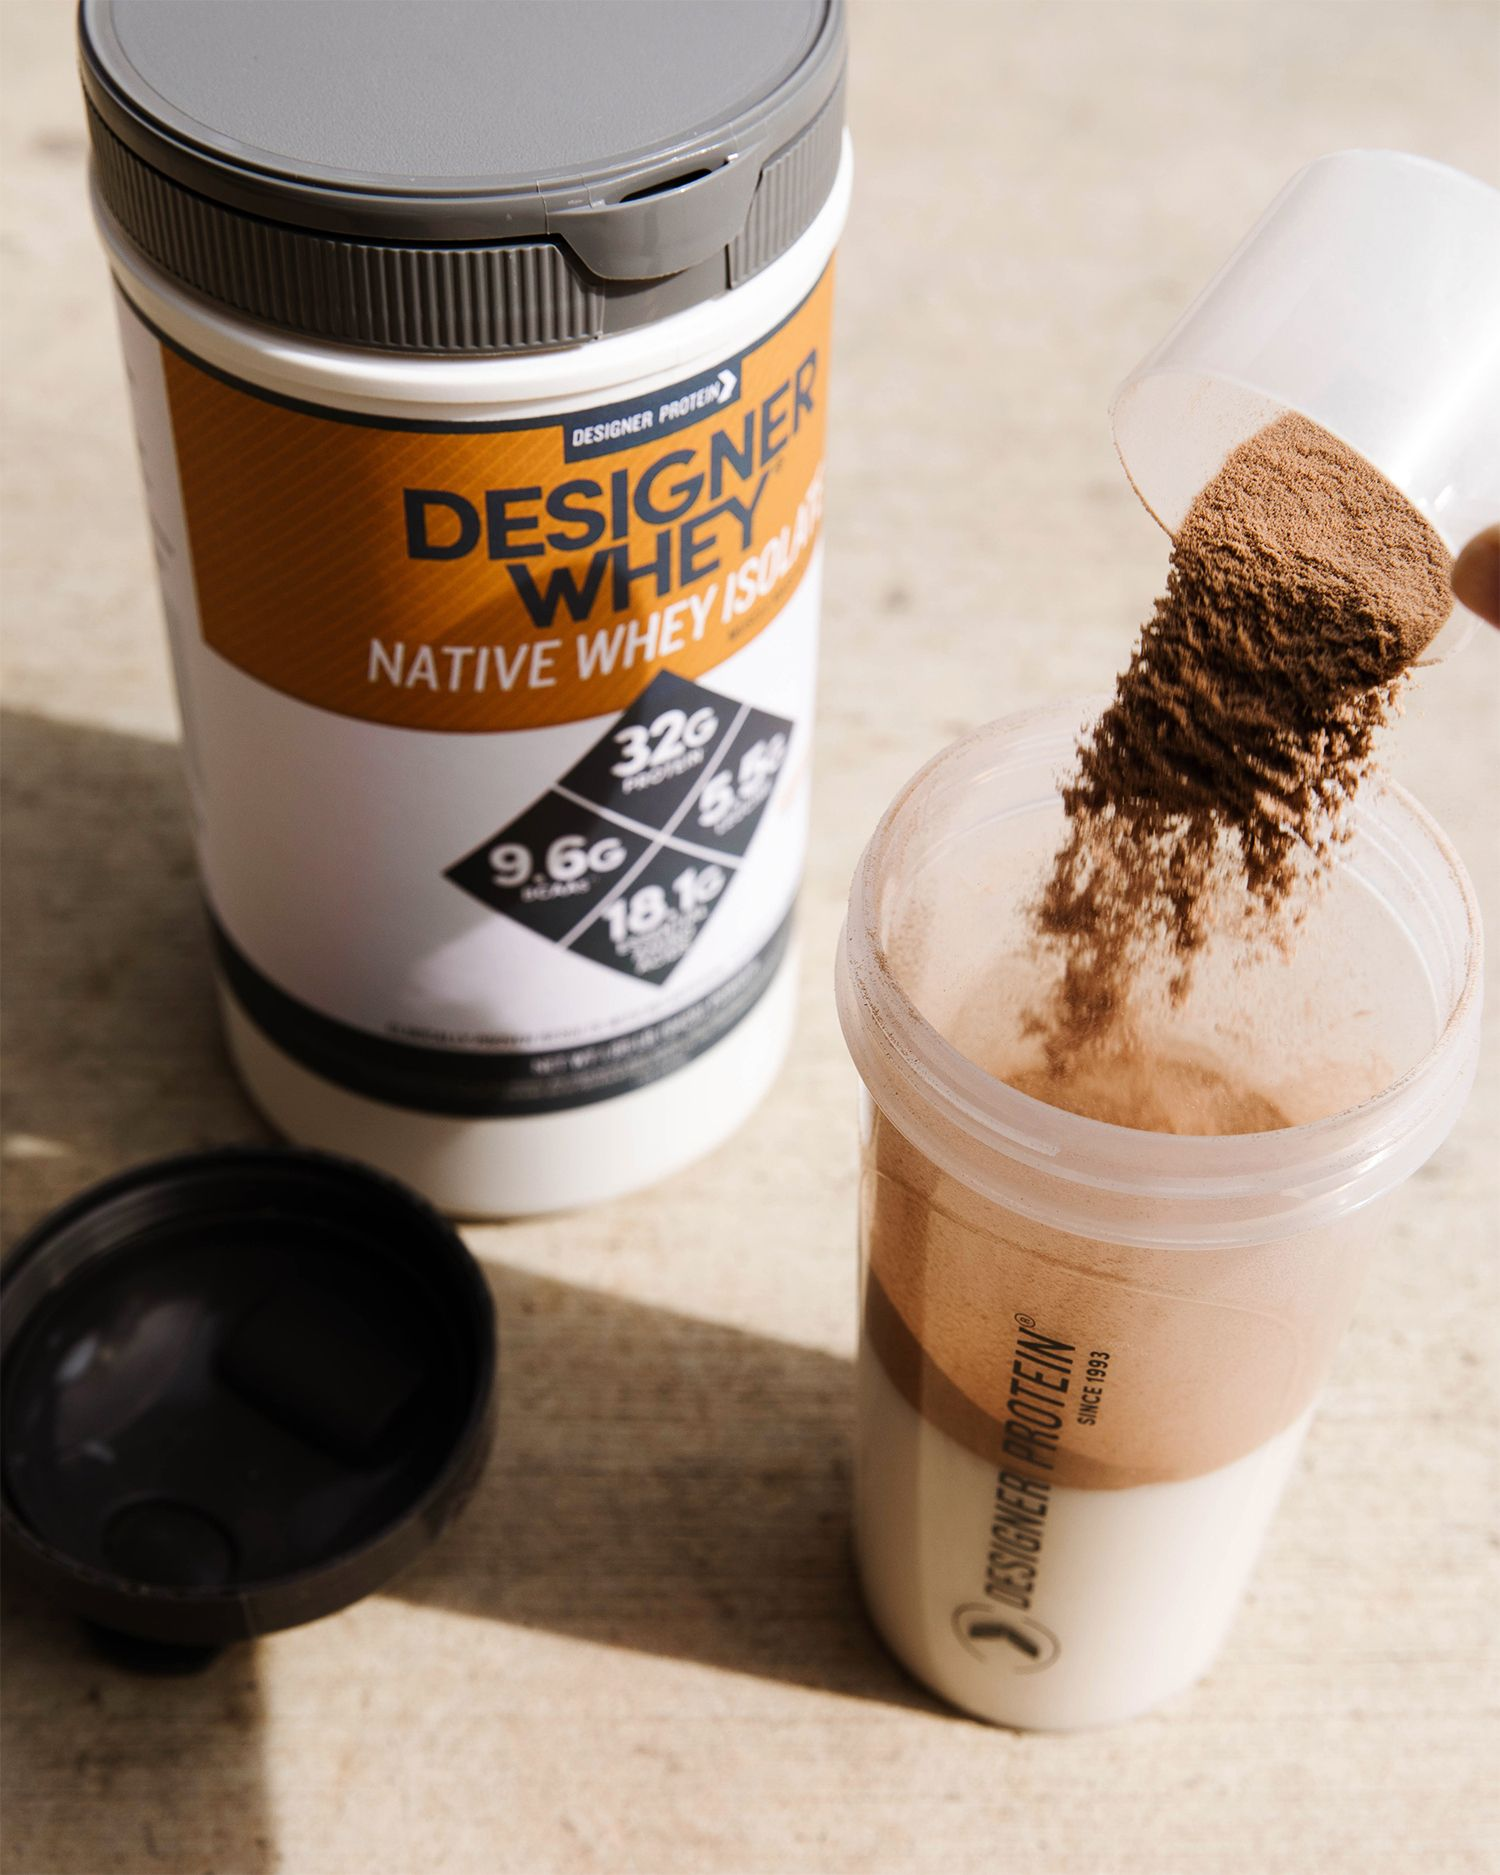 Pin on Designer Protein Products